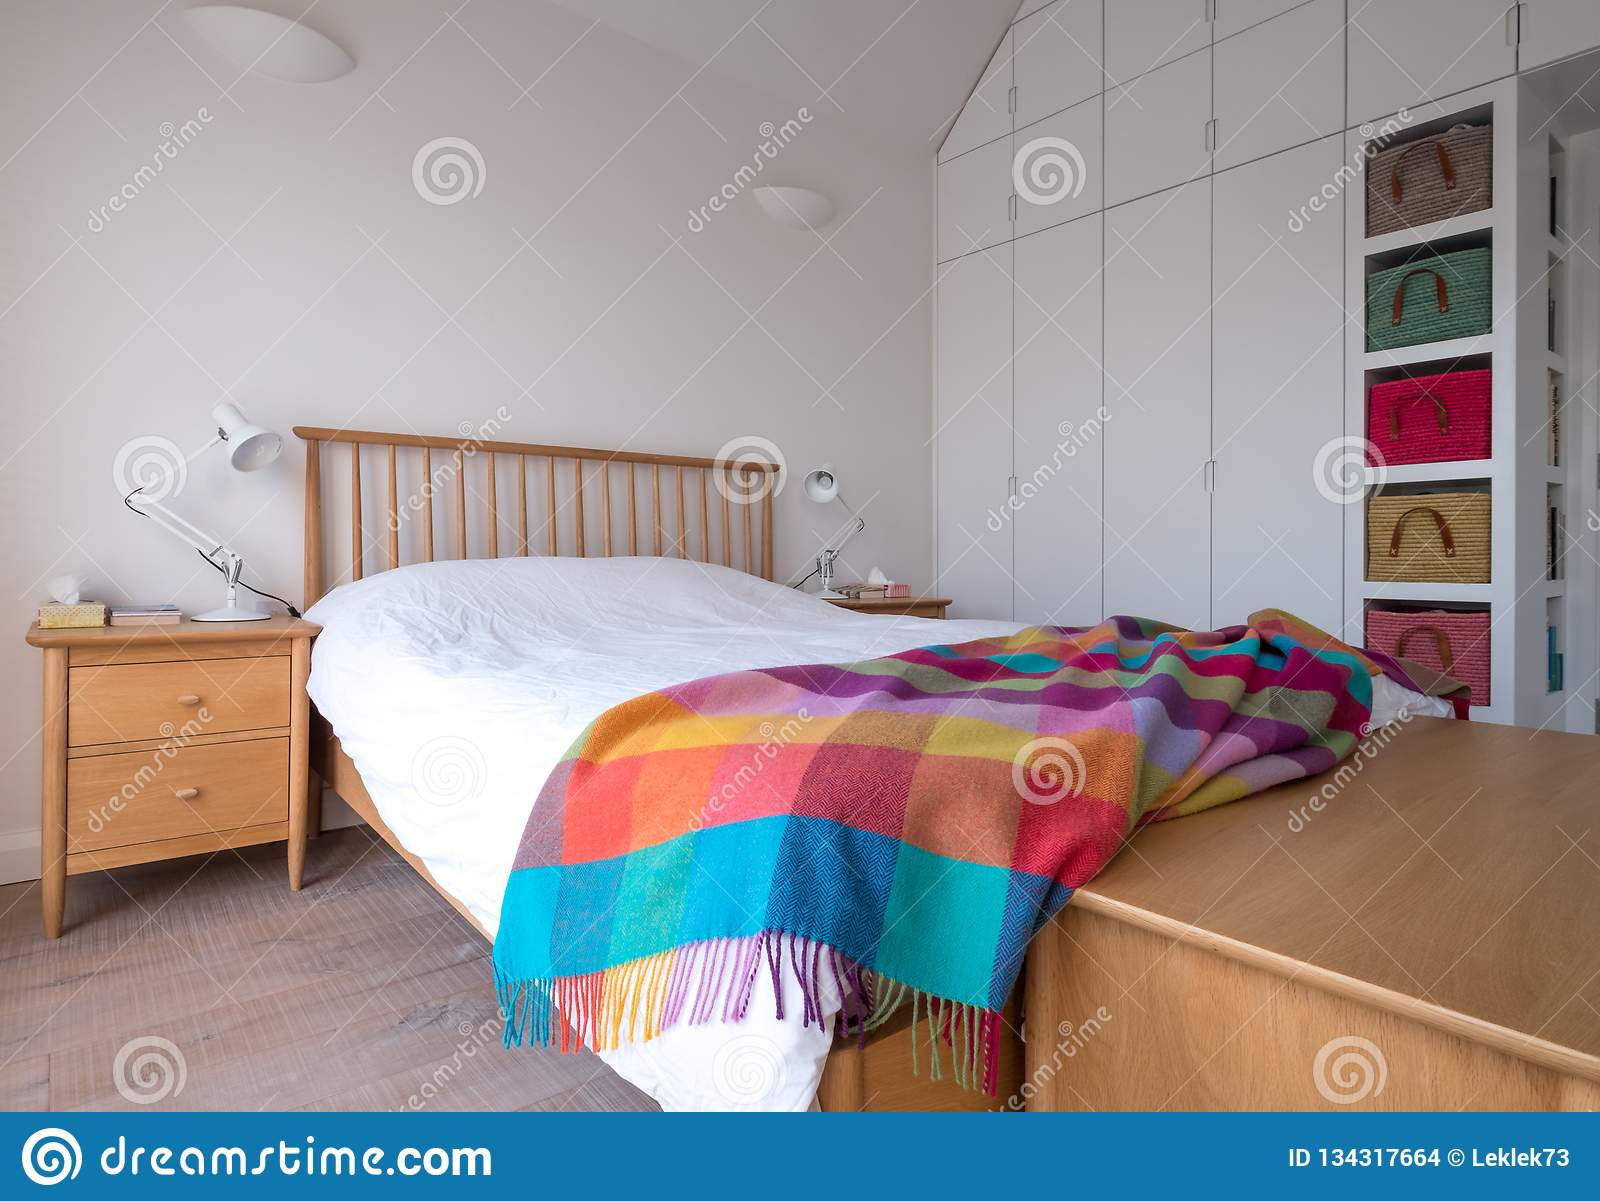 Scandi Style Bedroom Interior With Wooden Bedroom Furniture, White